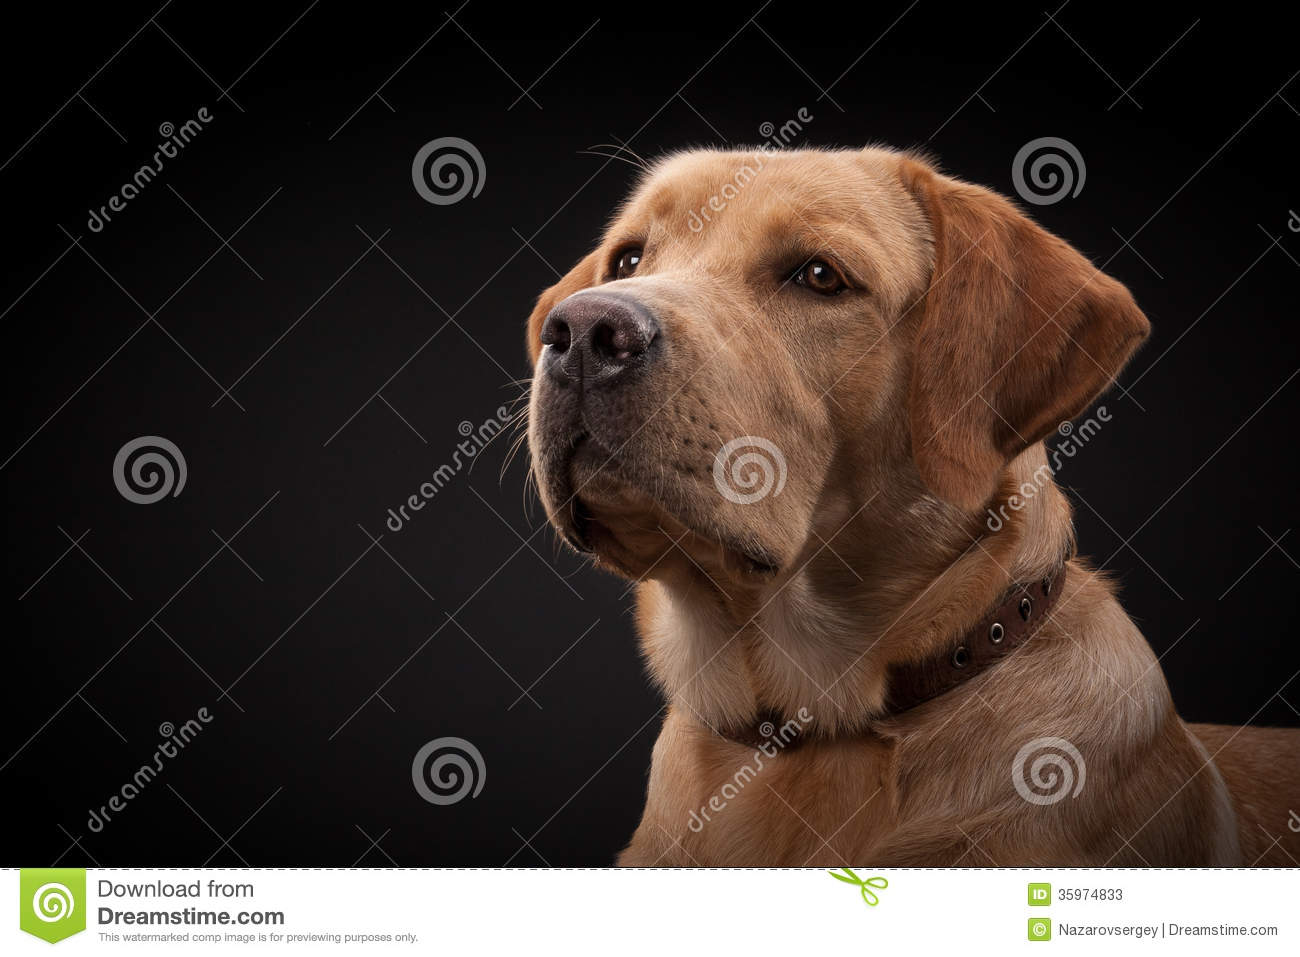 Perro de Labrador del golden retriever